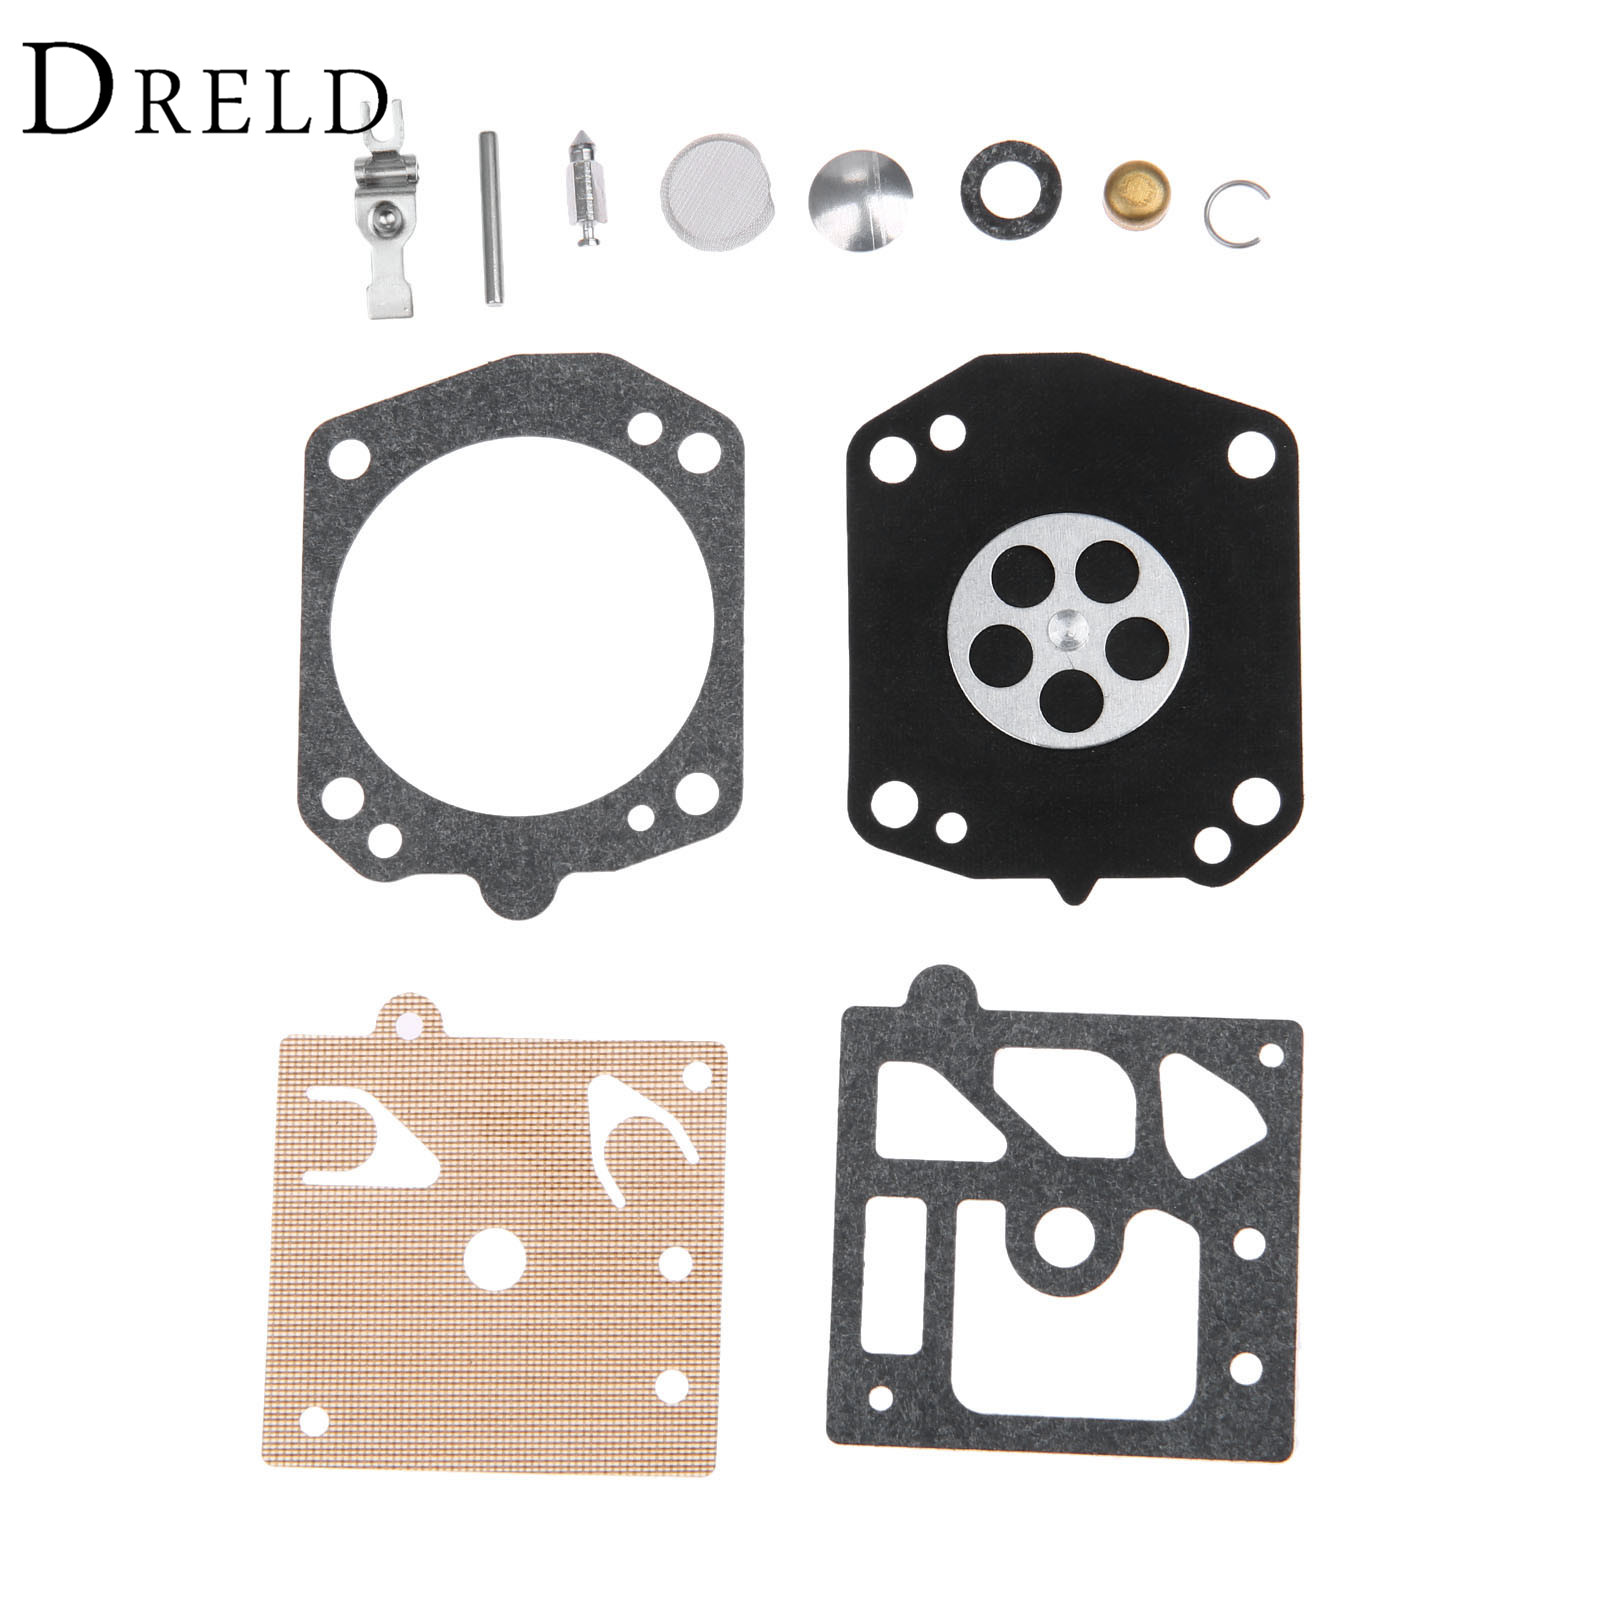 DRELD Carburetor Carb Repair Rebuild Kits For 359 359 EPA 357 357XP Blower Trimmer Chainsaw Parts #Walbro K22-HAD high quality carburetor carb carby for husqvarna partner 350 351 370 371 420 chainsaw poulan spare parts walbro 33 29